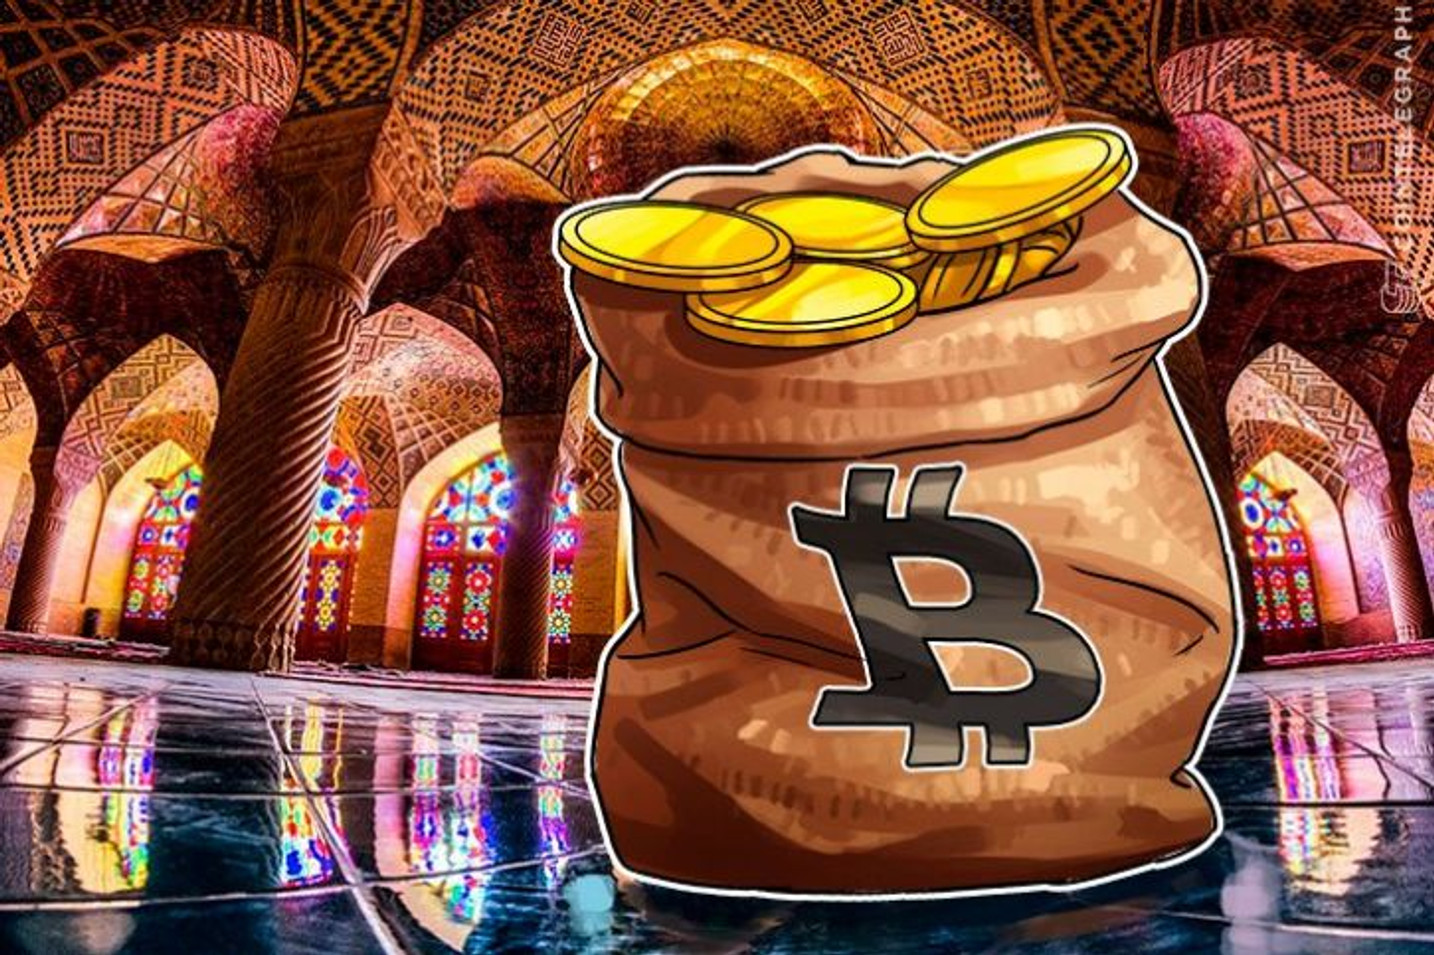 Bitcoin Worth 'A Few Billion Dollars' Coming To Iran: US Analyst